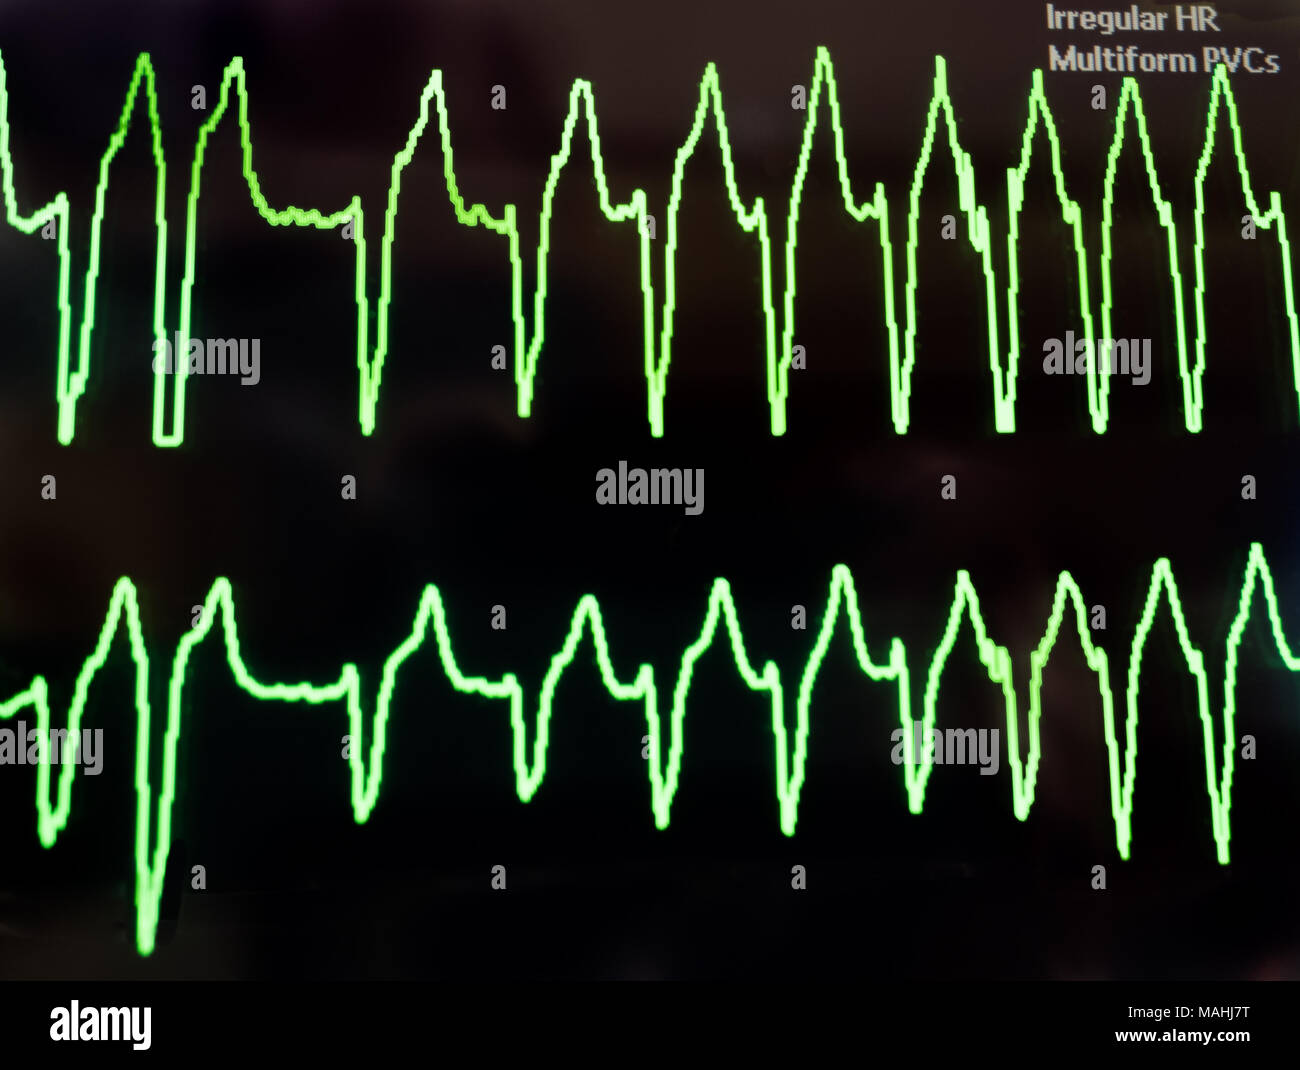 premature ventricular contractions stock photos premature